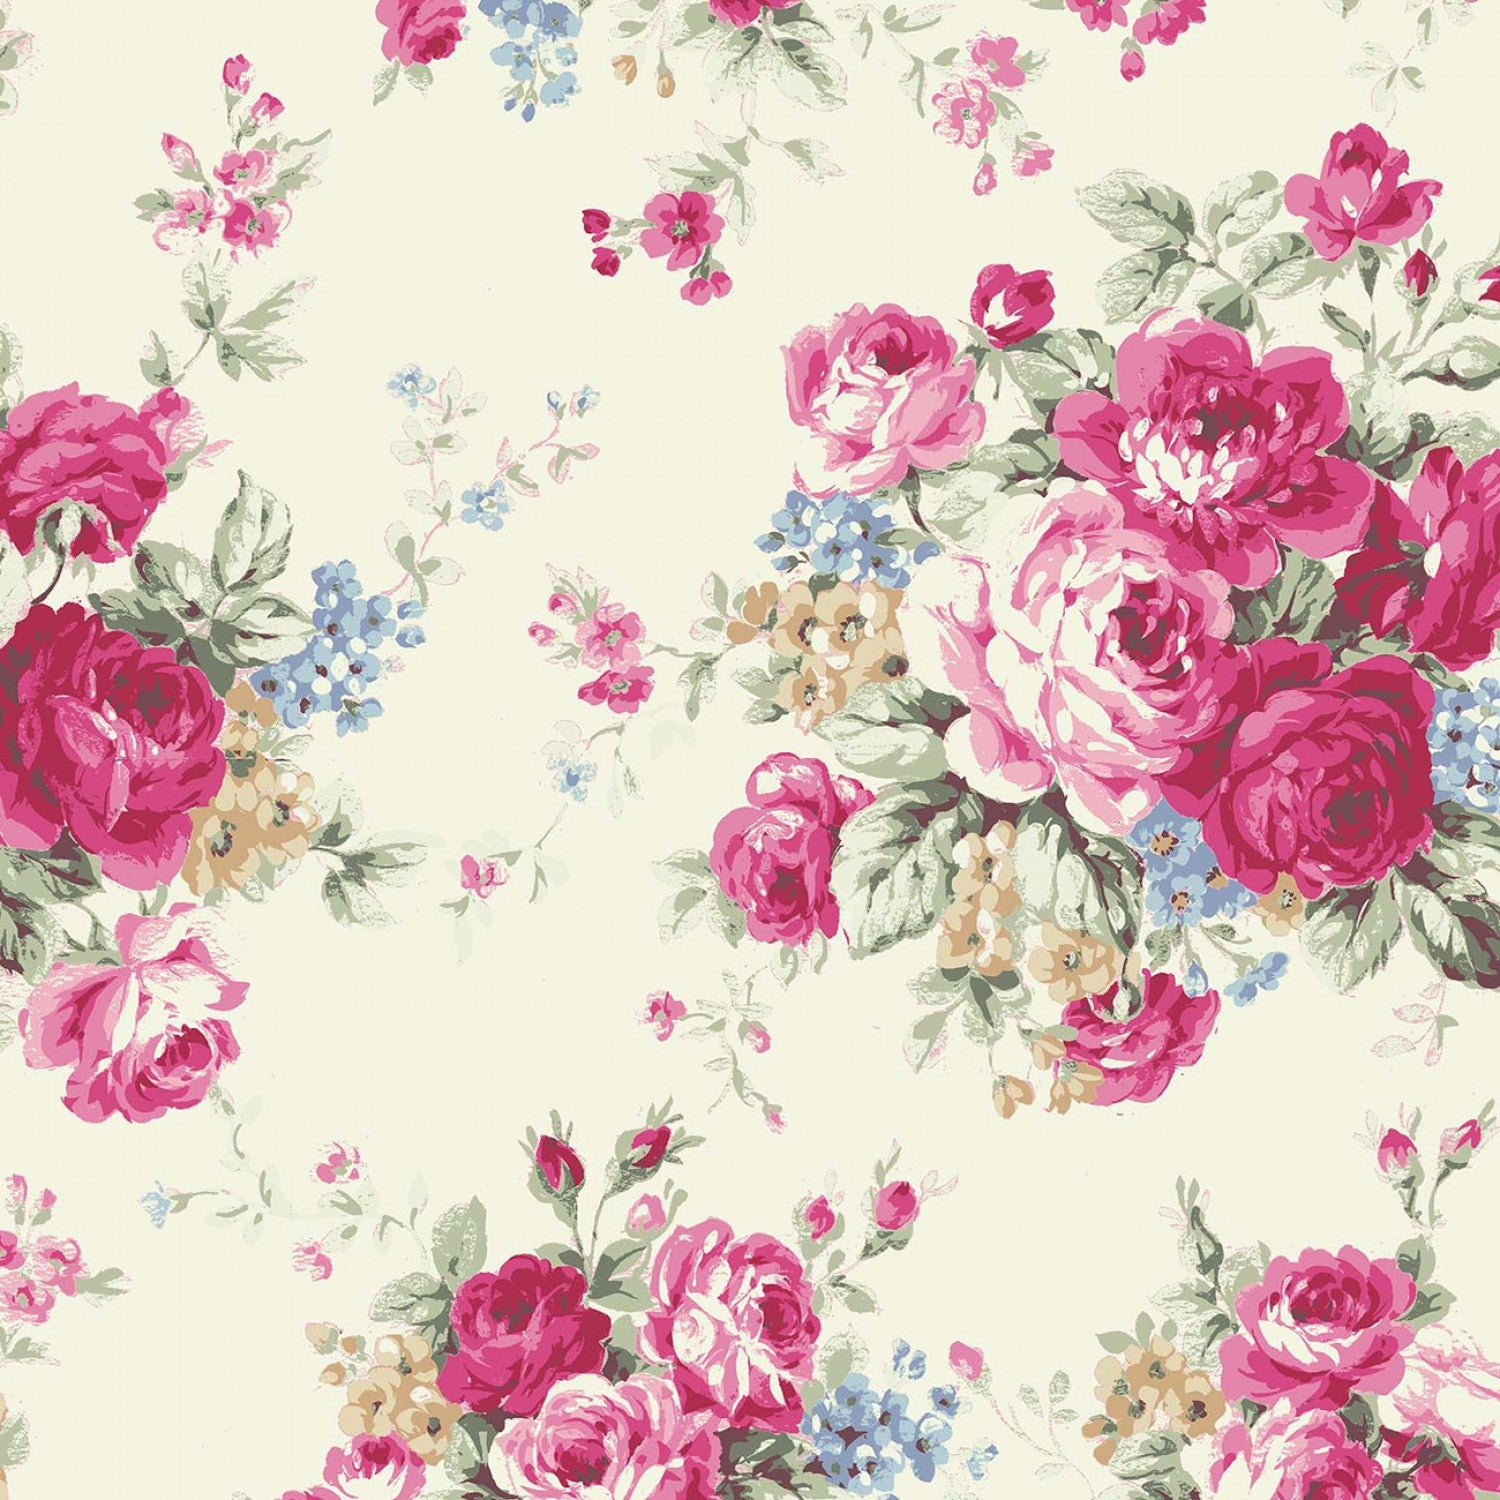 Ruru Rose Bouquet in Paris cotton fabric by Quilt Gate Ru2370-11A Large Bouquet on Cream